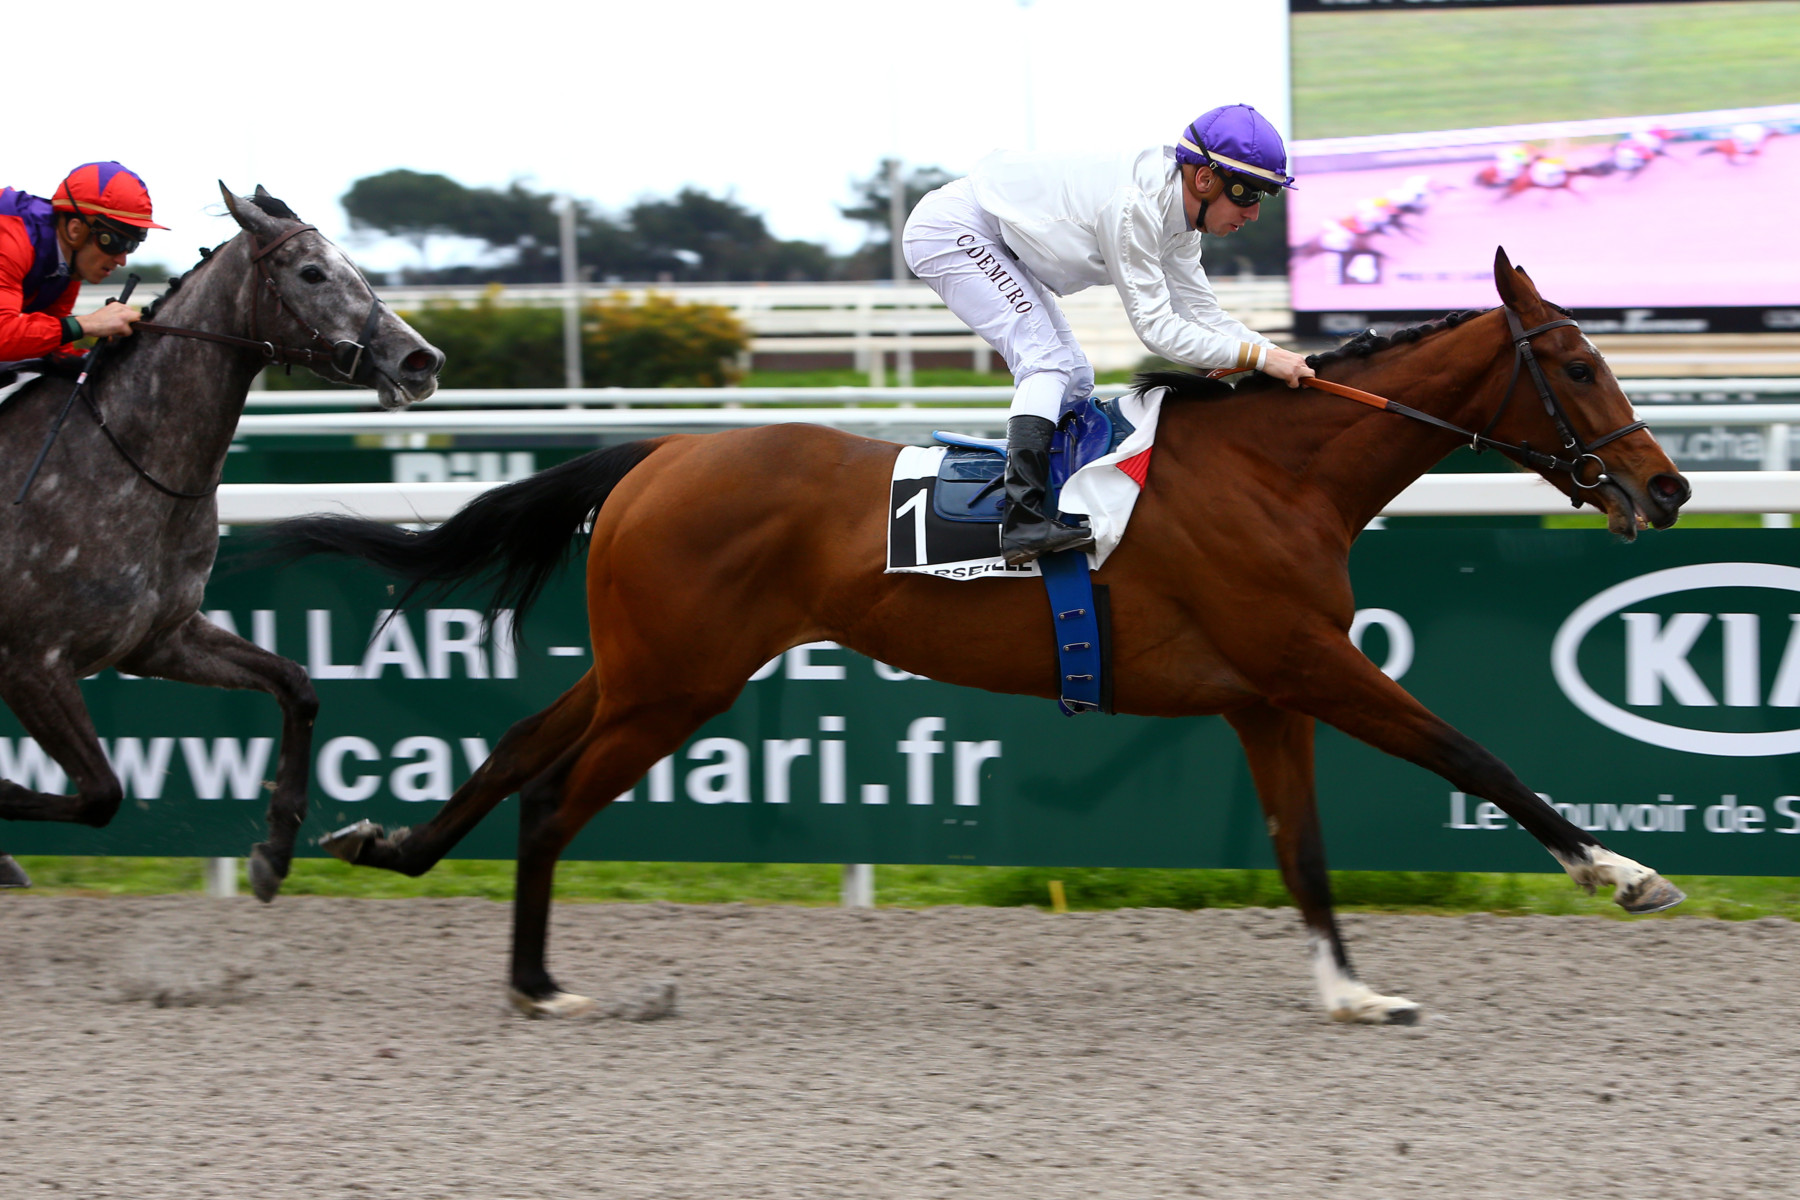 PRIX DE CARRY (MAIDEN) - Mustanga change de tactique